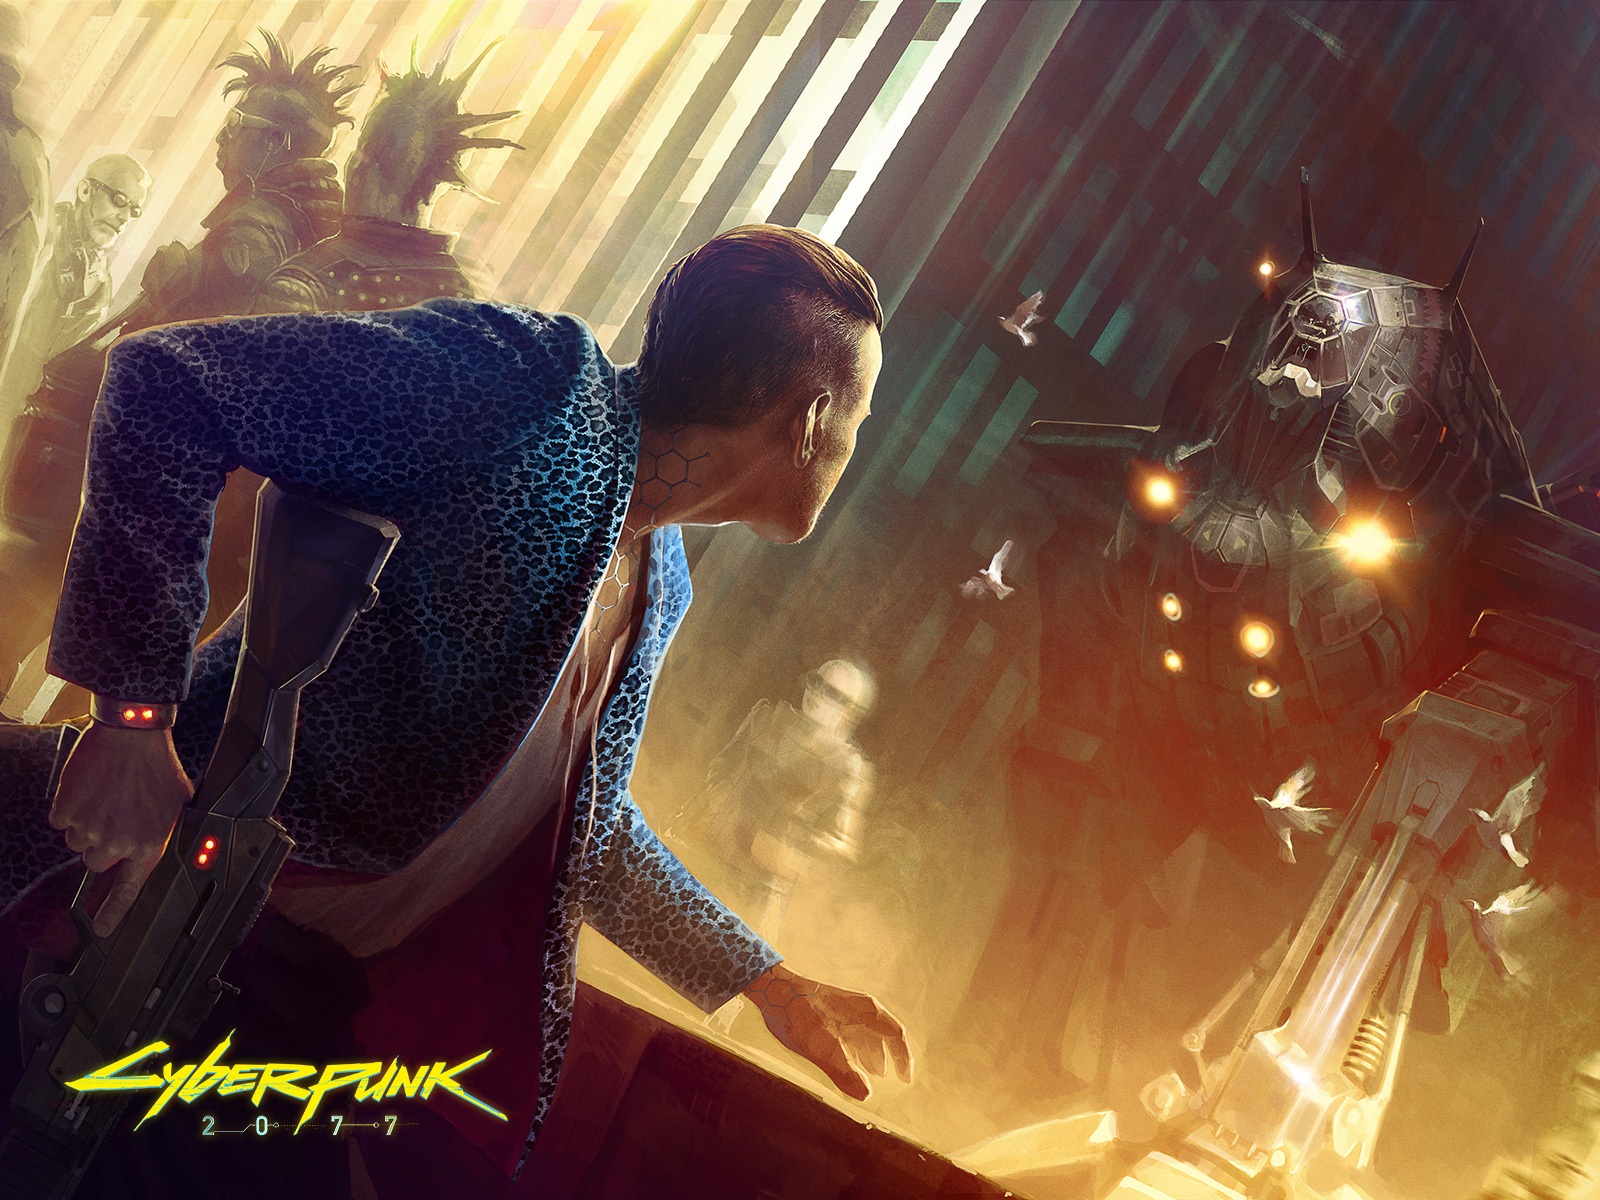 Cyberpunk 2077: Men vs. Machine? (CD Projekt Red)